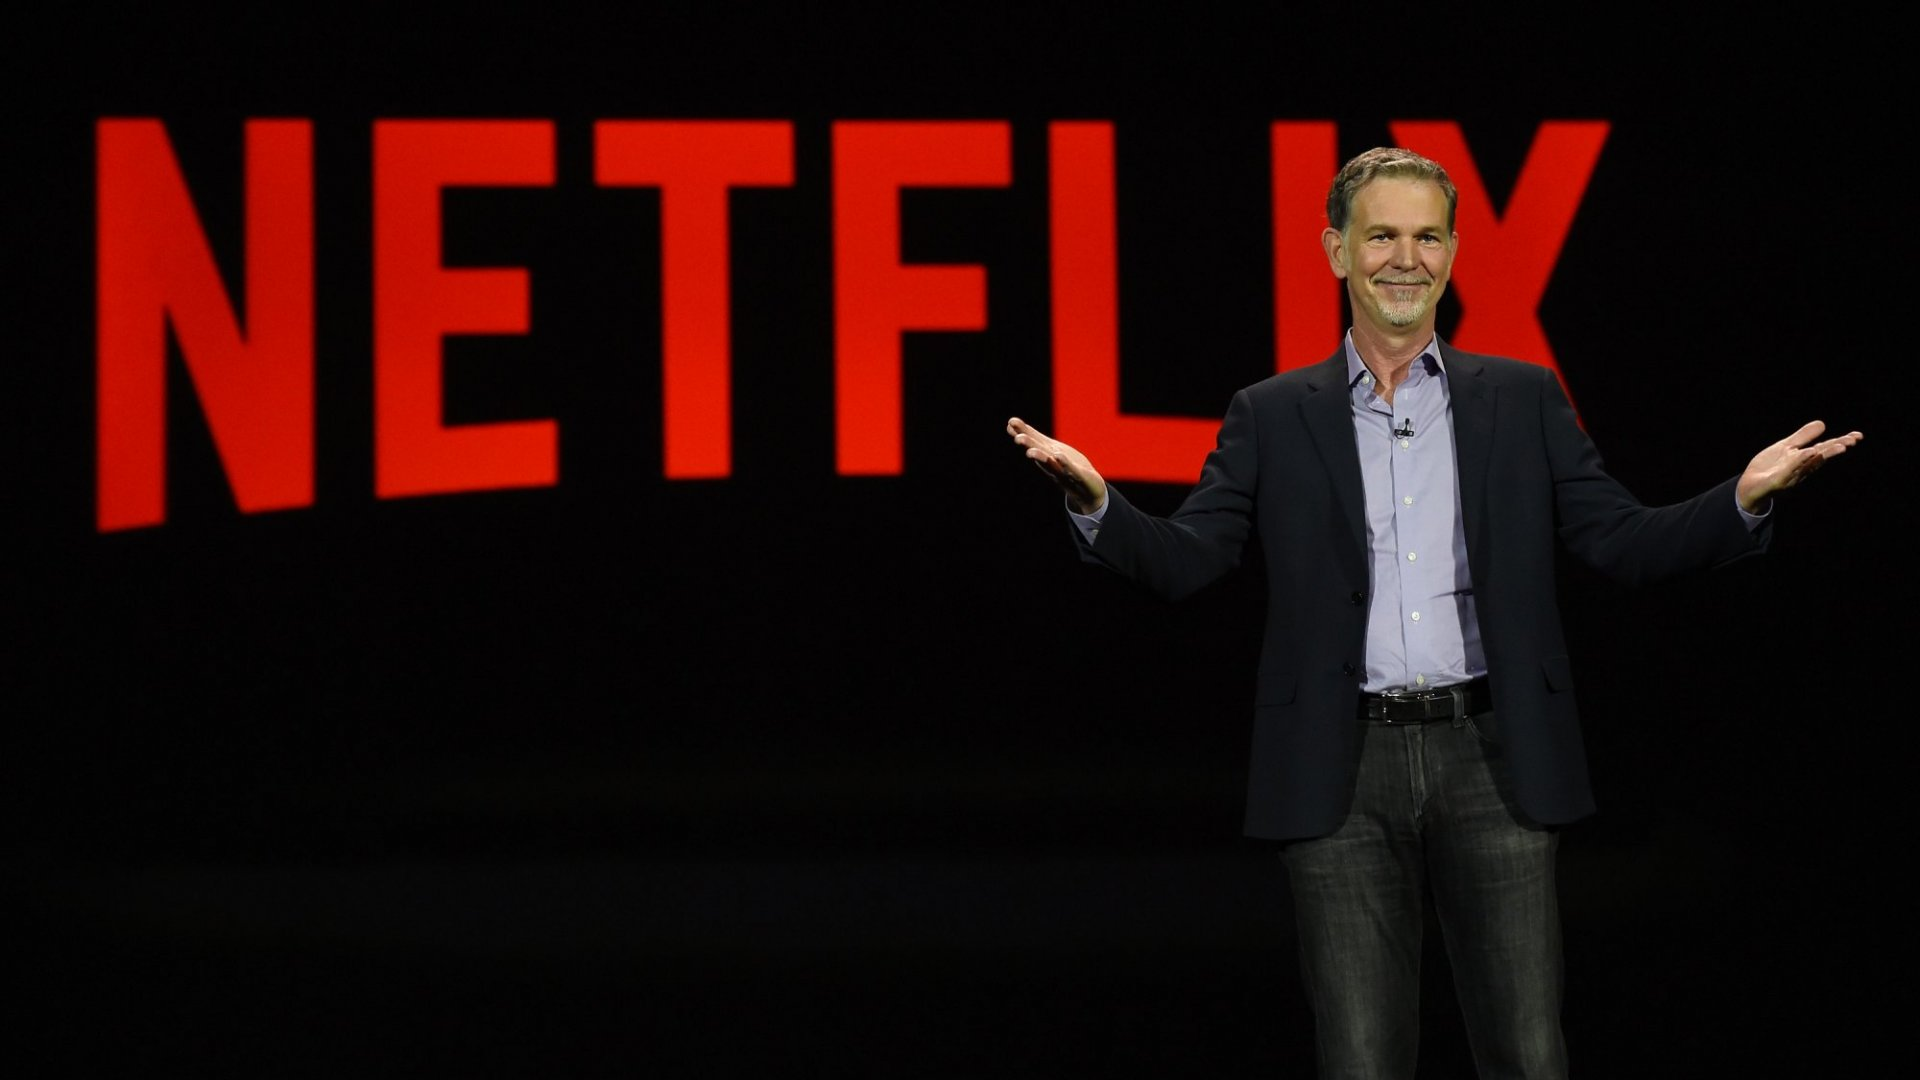 Netflix Has a Truly Brilliant Strategy, But This 1 Small Change Could Totally Destroy It. (It's No Accident)